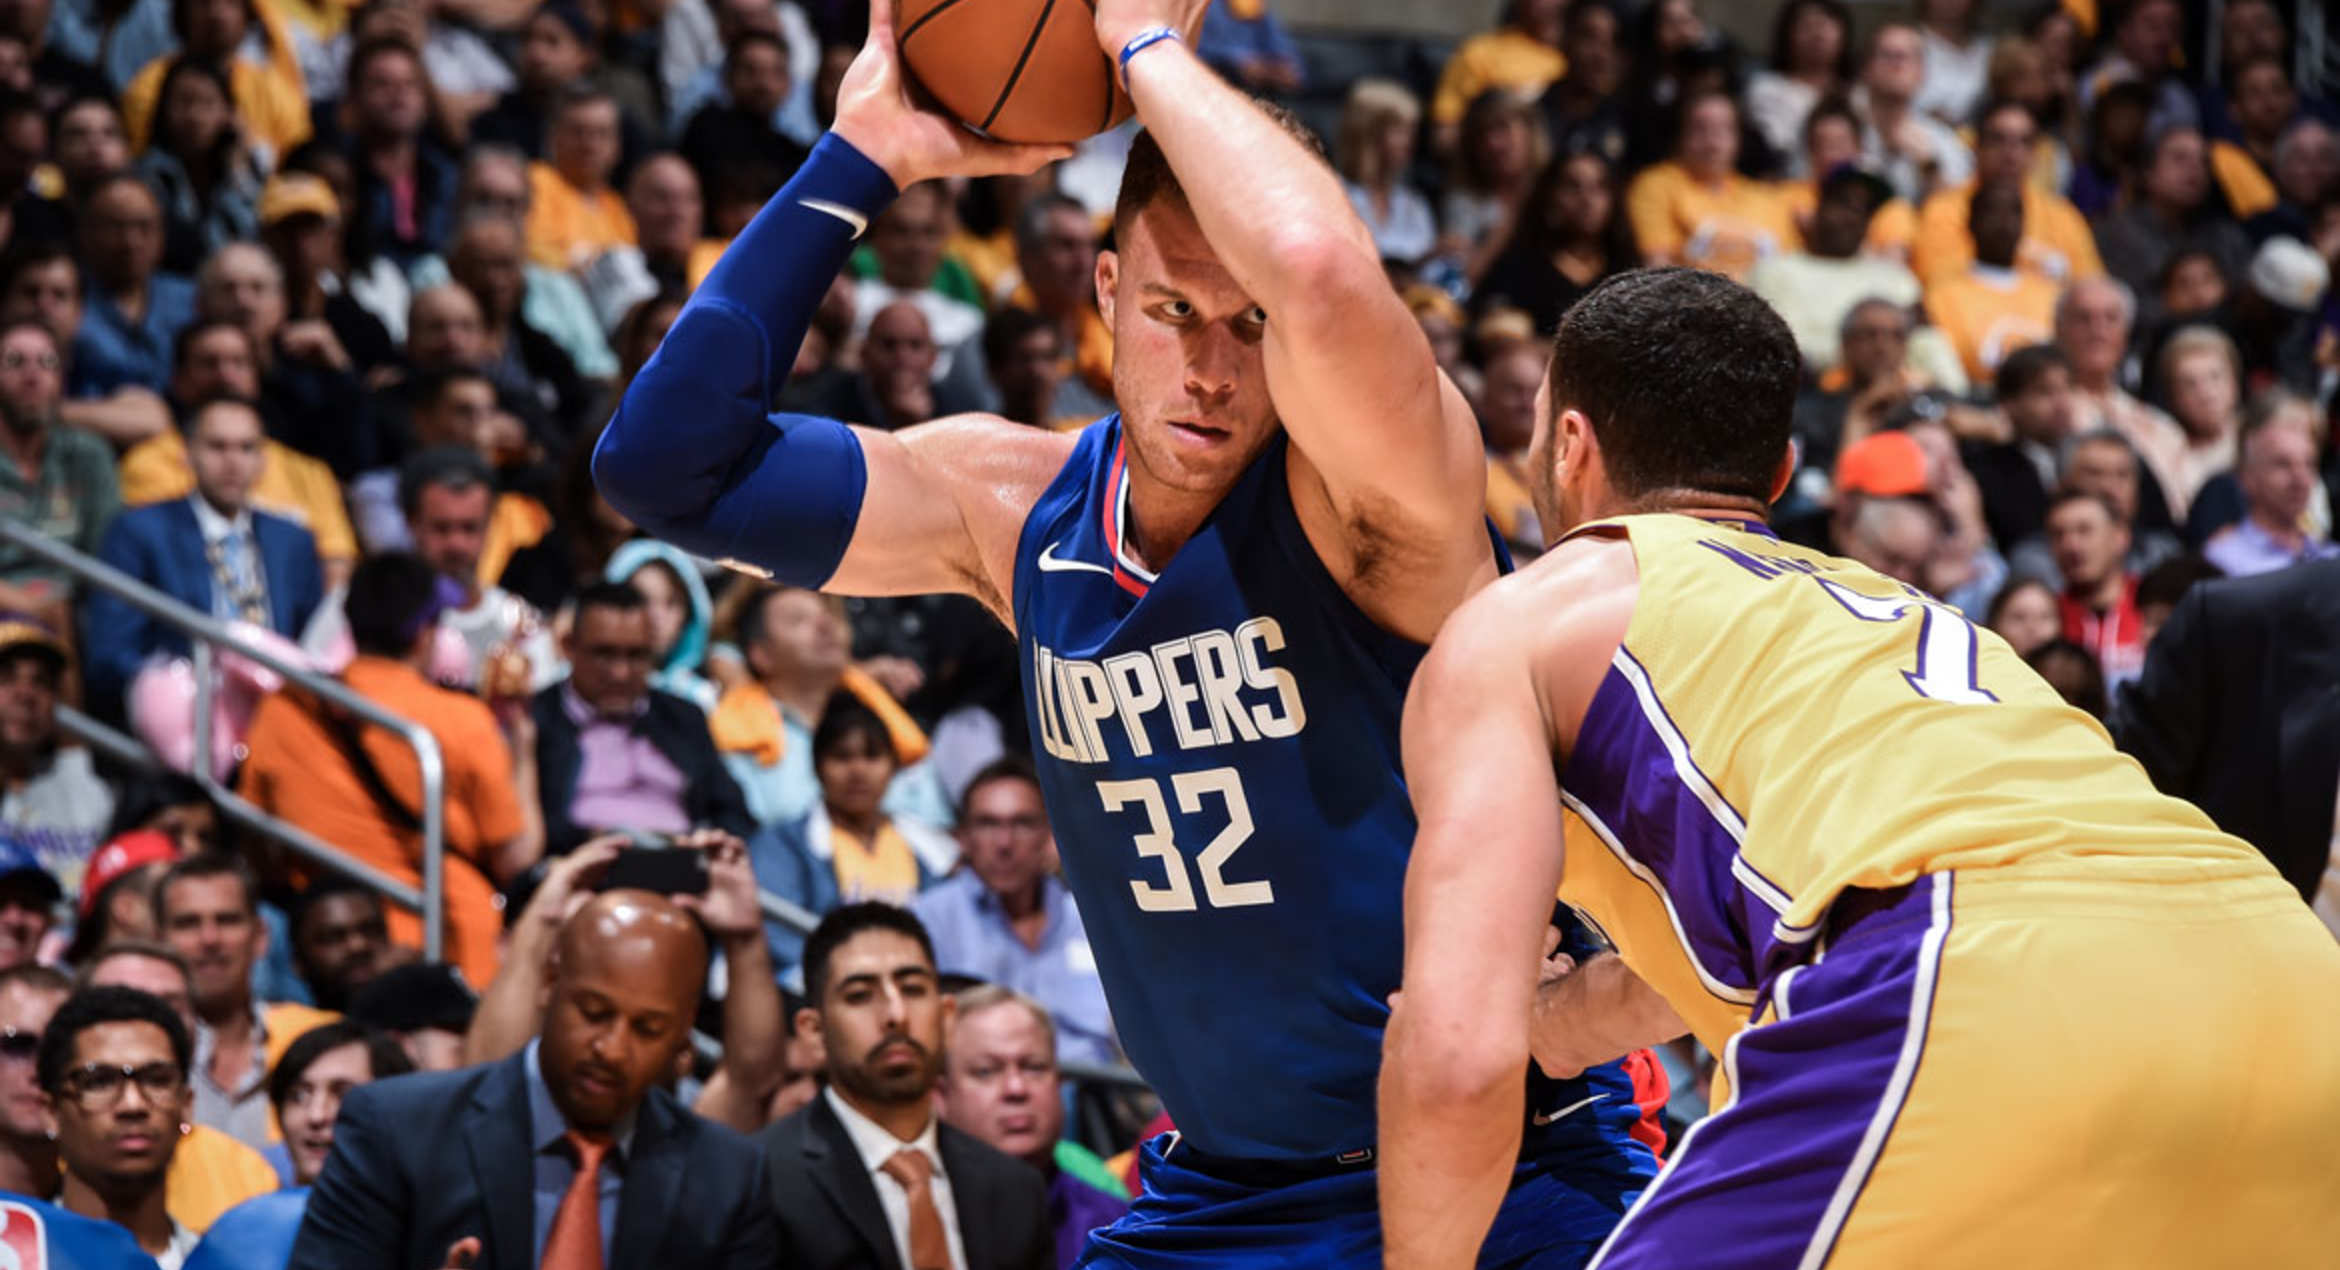 Griffin could return in Clippers' latest matchup with Lakers